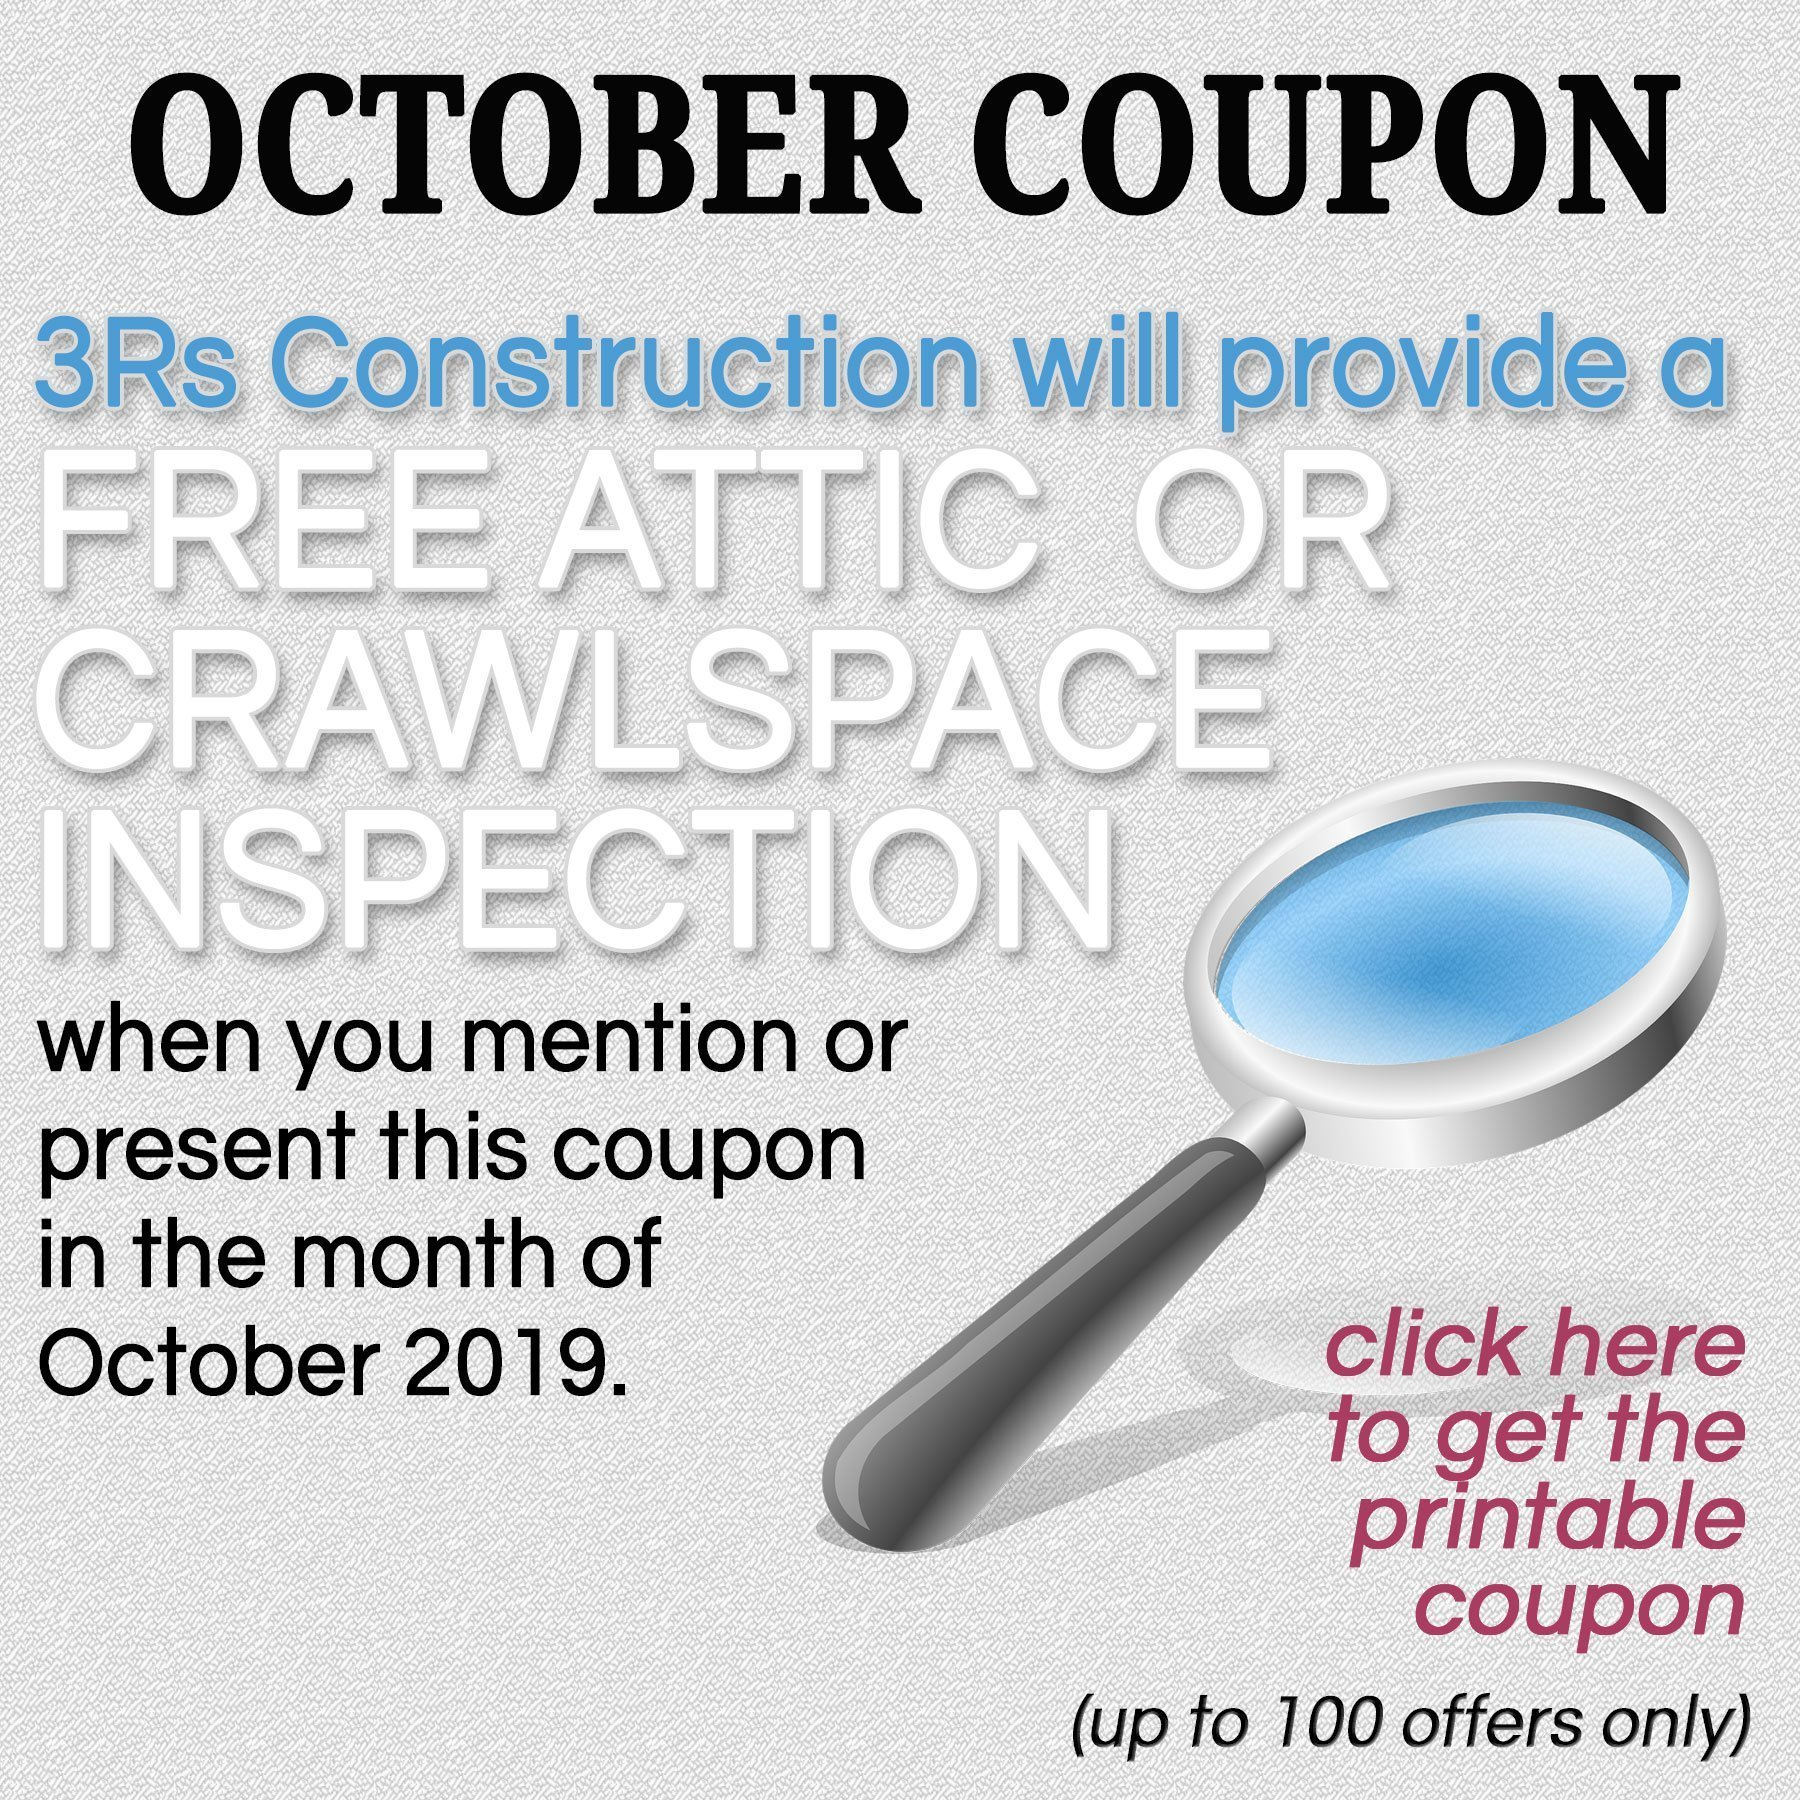 3Rs Home Tips Coupon for Attic and Crawlspace Inspection